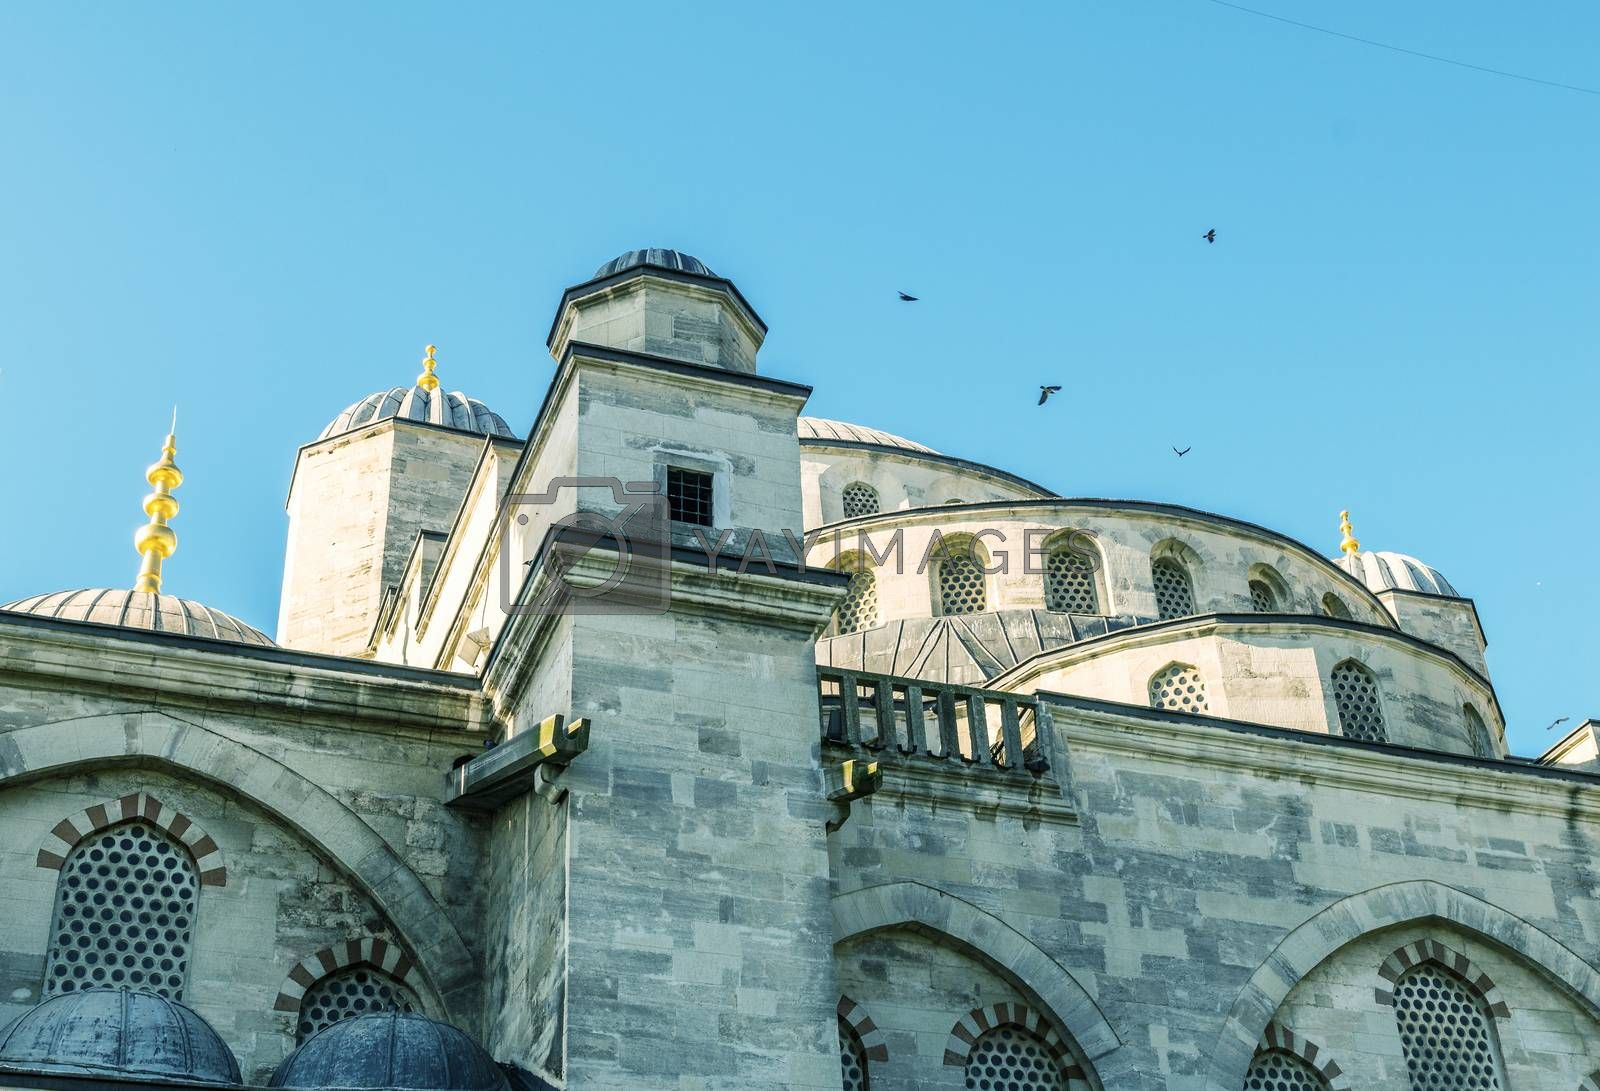 Istanbul. Blue Mosque exterior view.